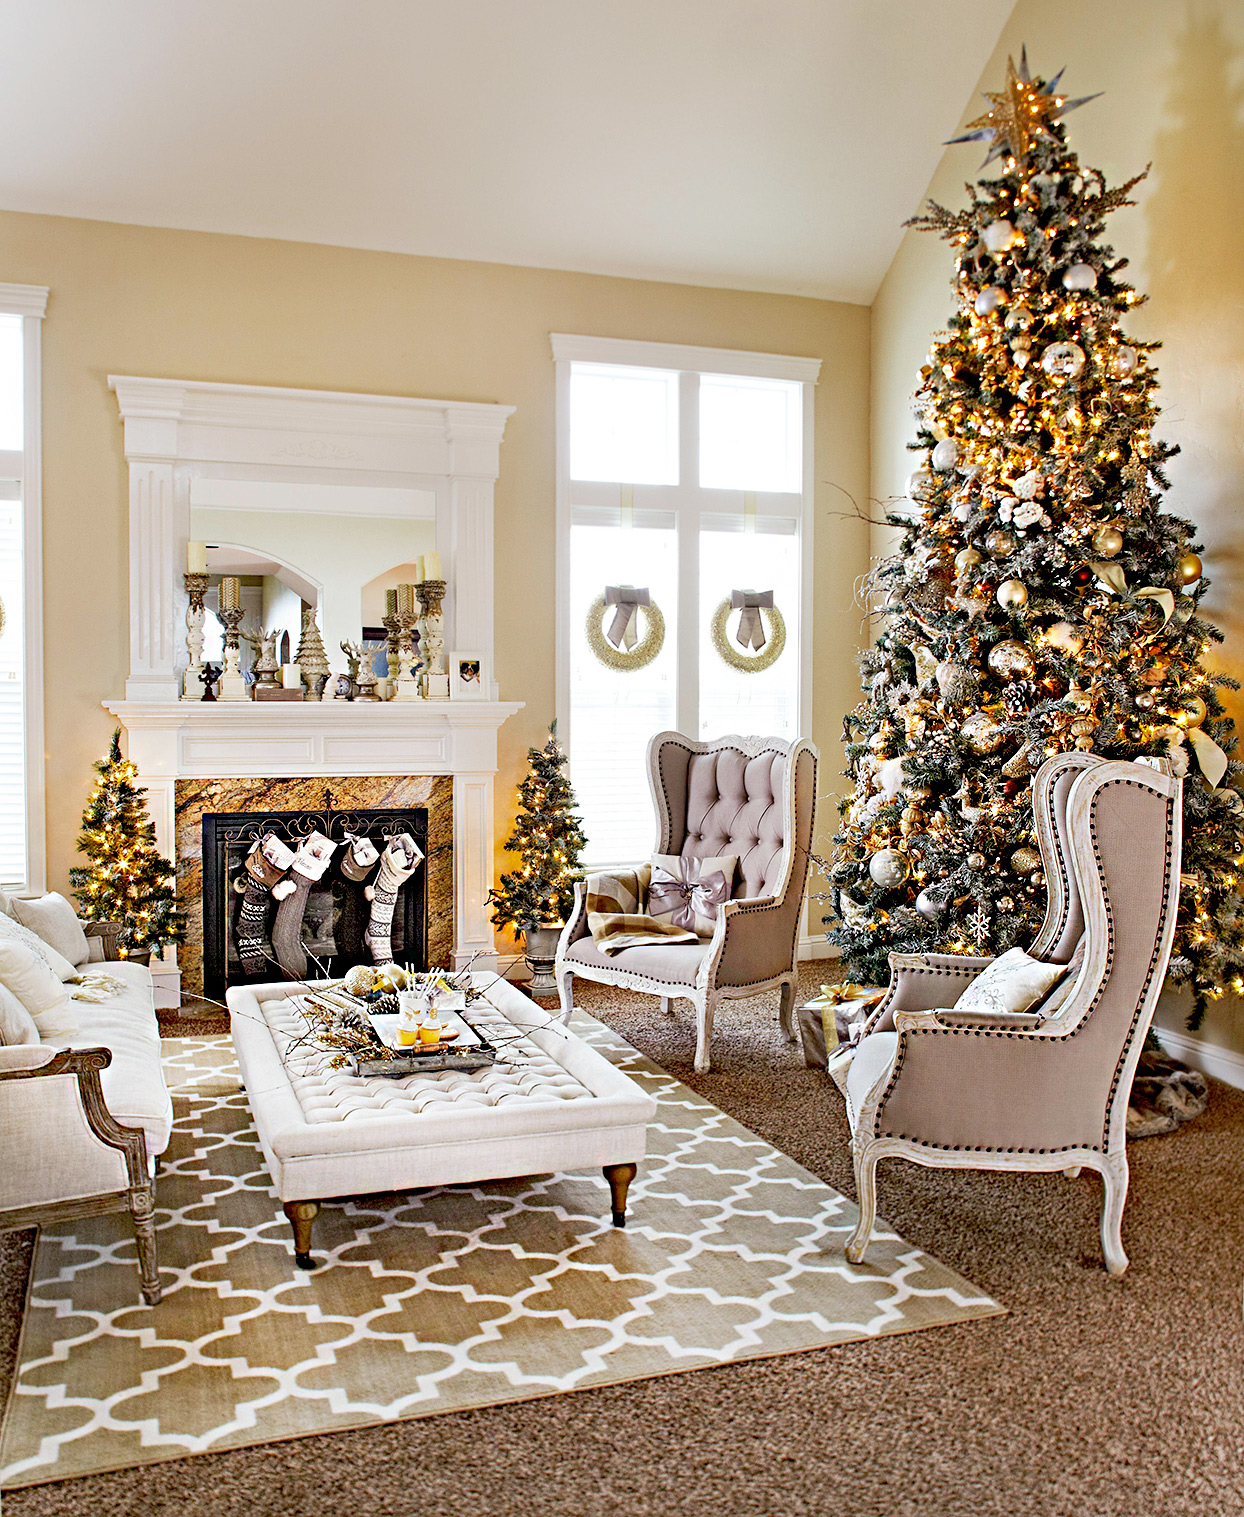 Living room with fireplace and Christmas tree